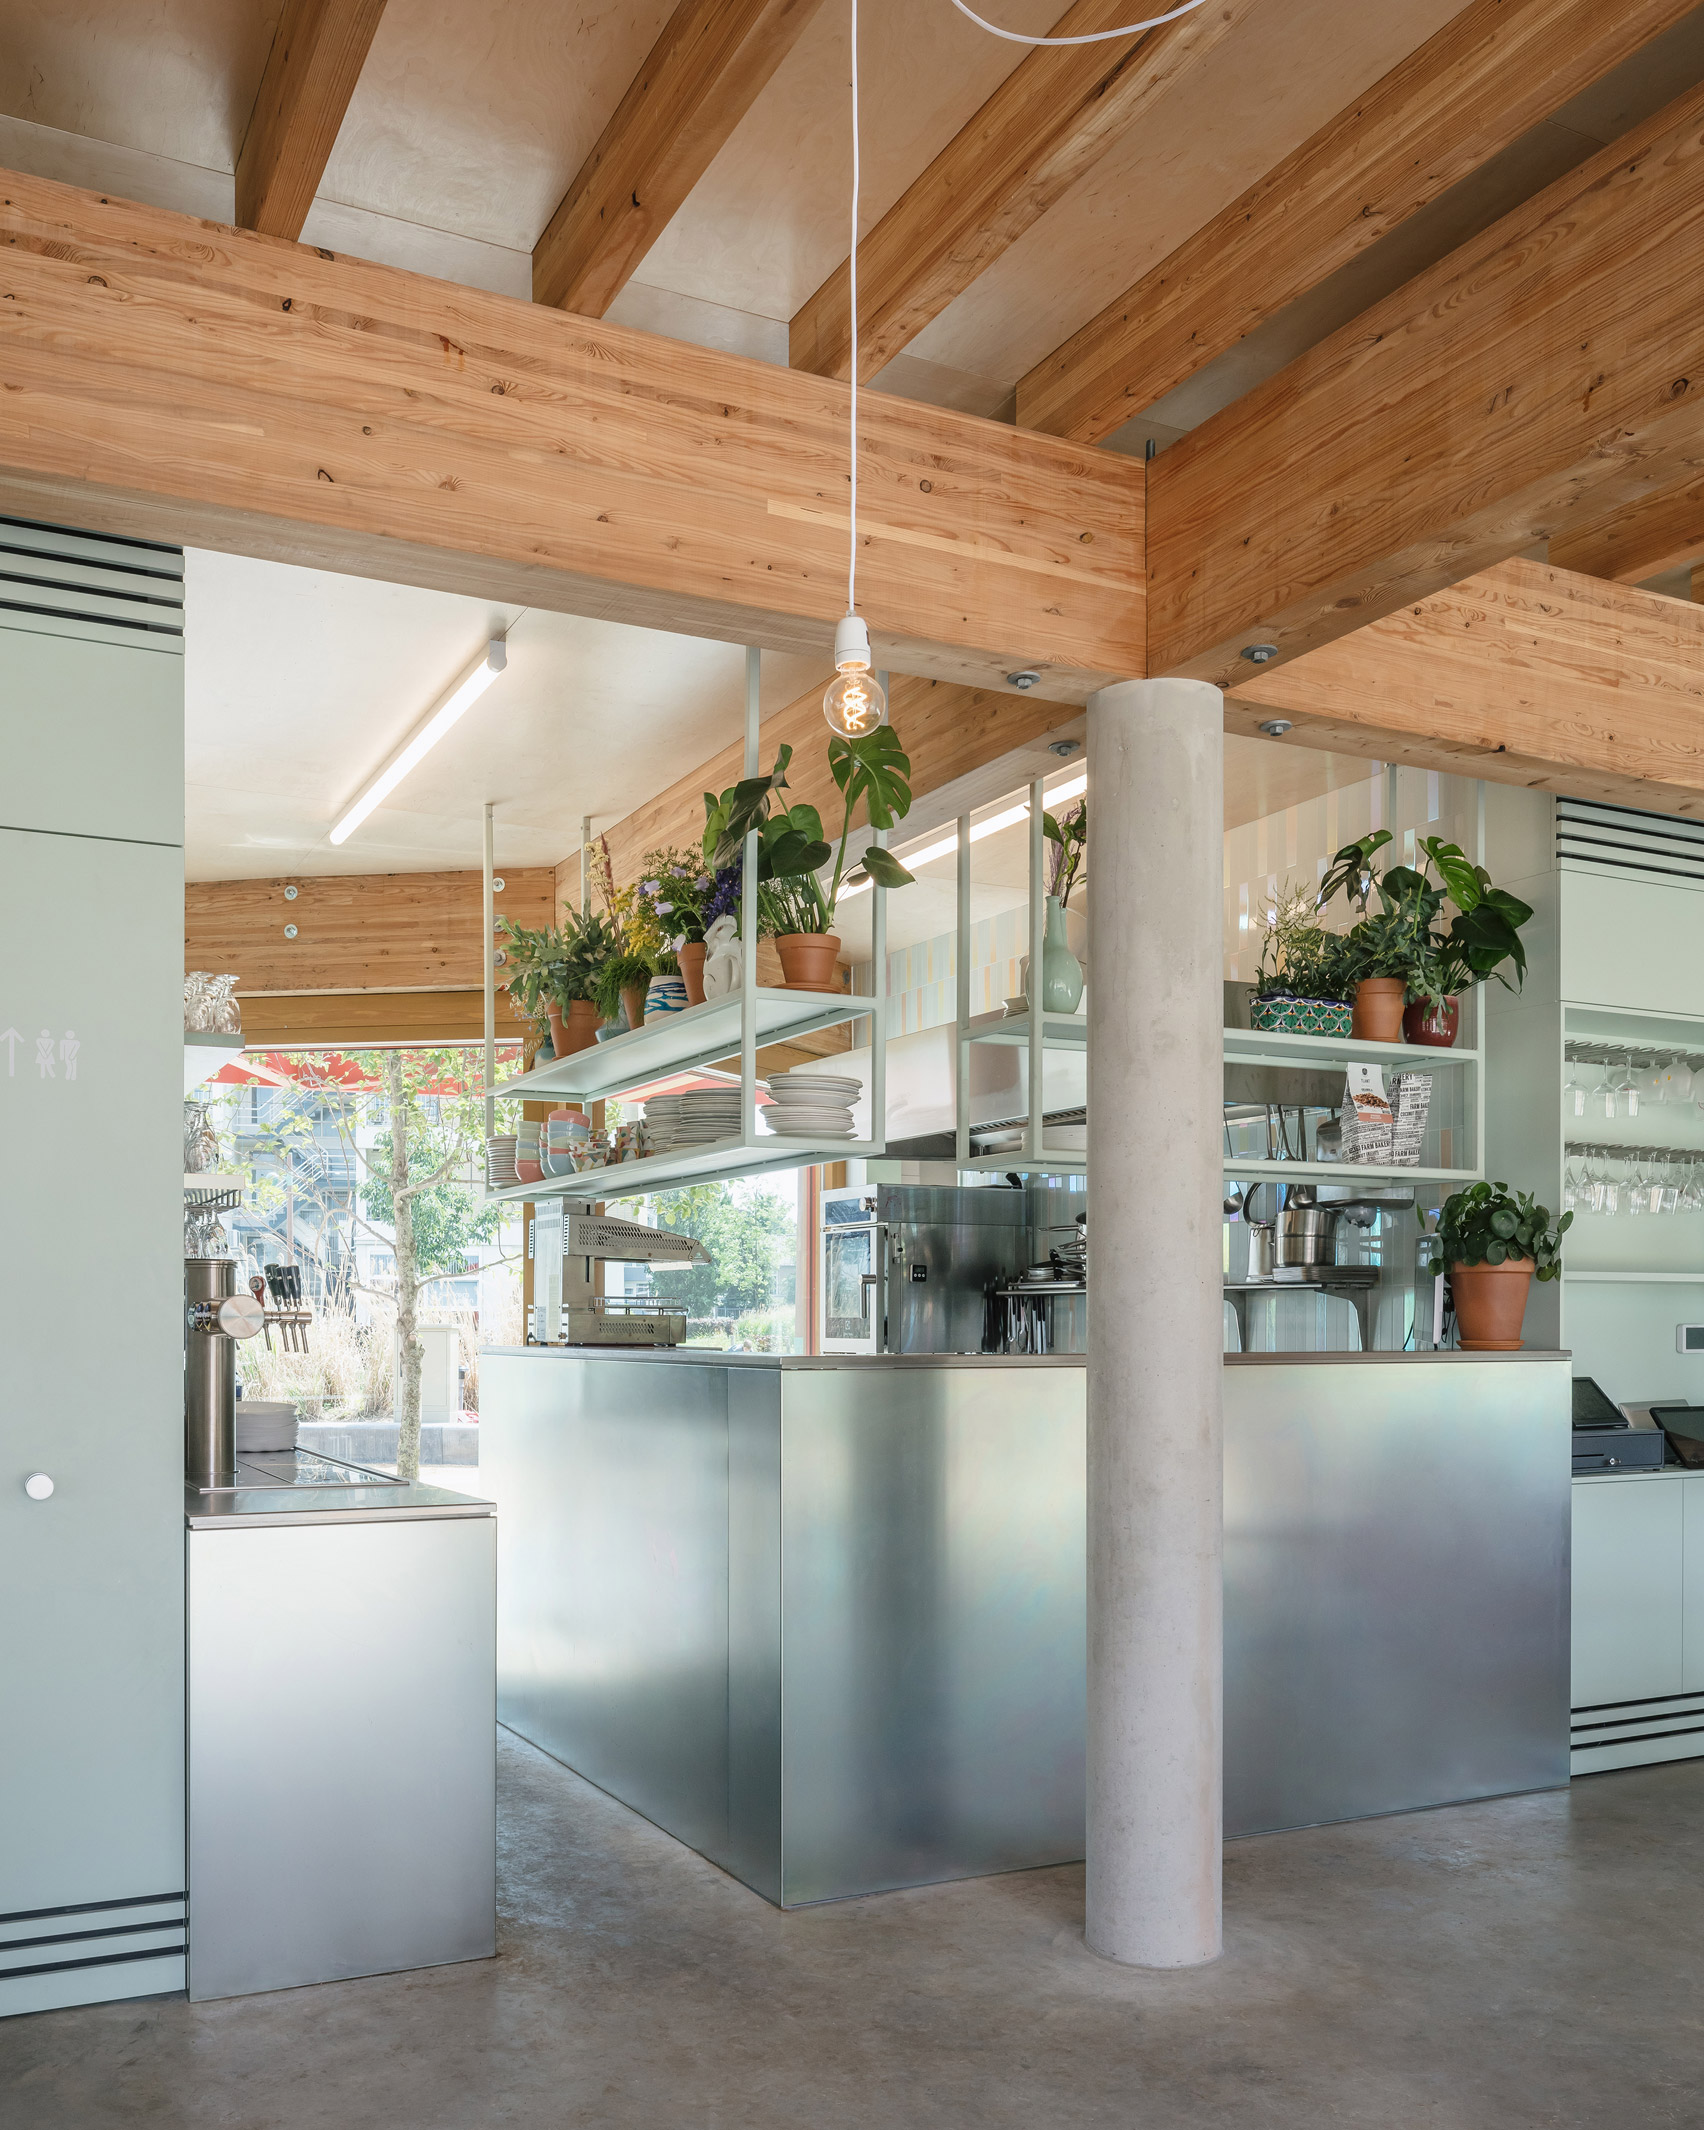 Steel and concrete restaurant interior with wood ceiling